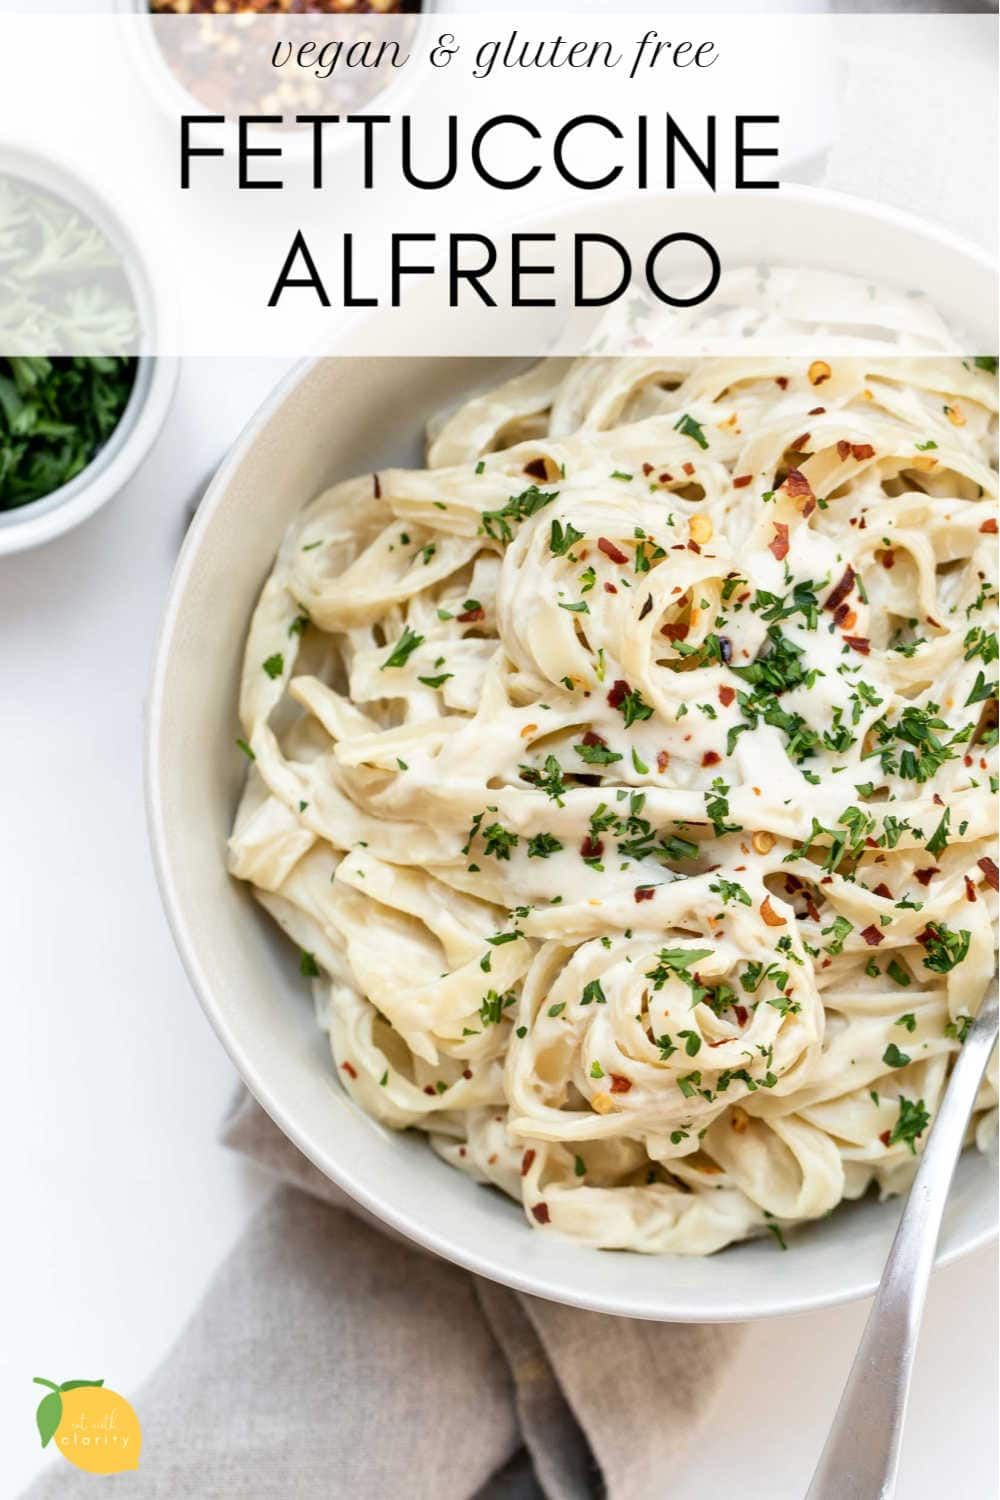 This Vegan Alfredo Sauce And Fettuccine Is The Creamiest Dairy Free Pasta Out There Plus It S Ready In Under 30 Minute In 2020 Fettuccine Sauce Recipes Alfredo Sauce